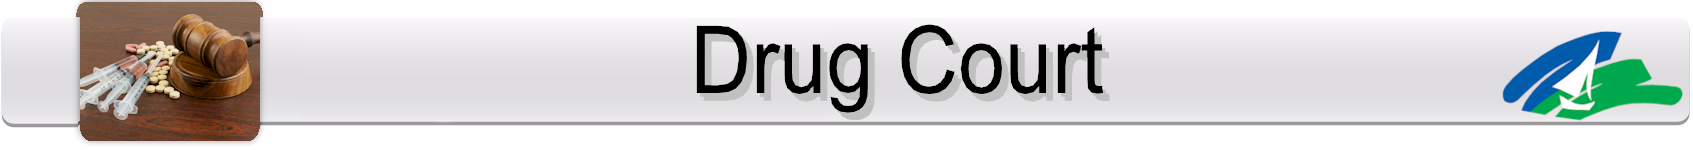 Seminole Drug Court Page Banner